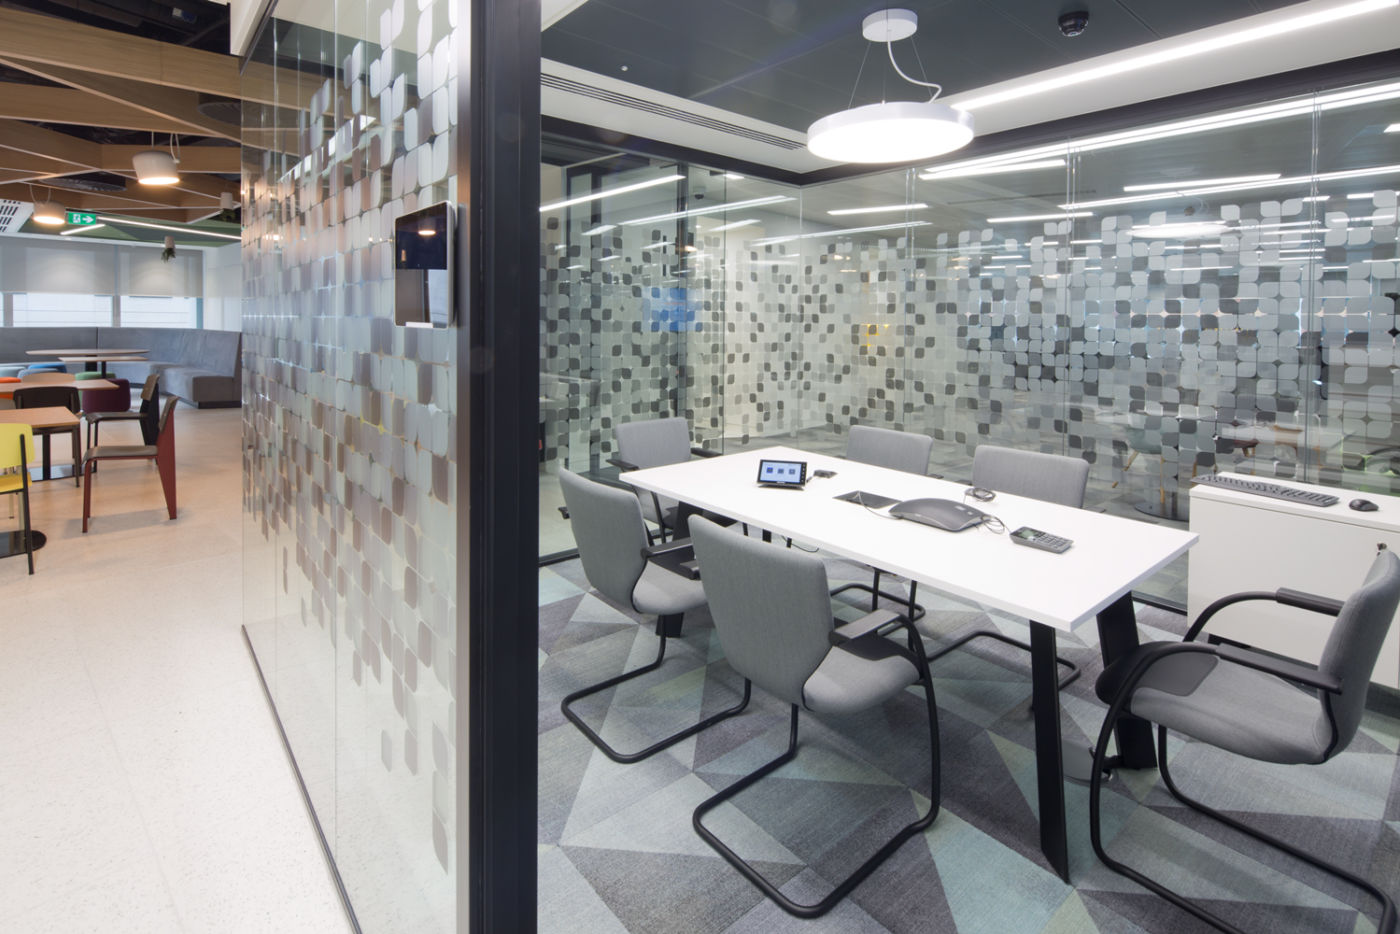 Small meeting room behind glass screen